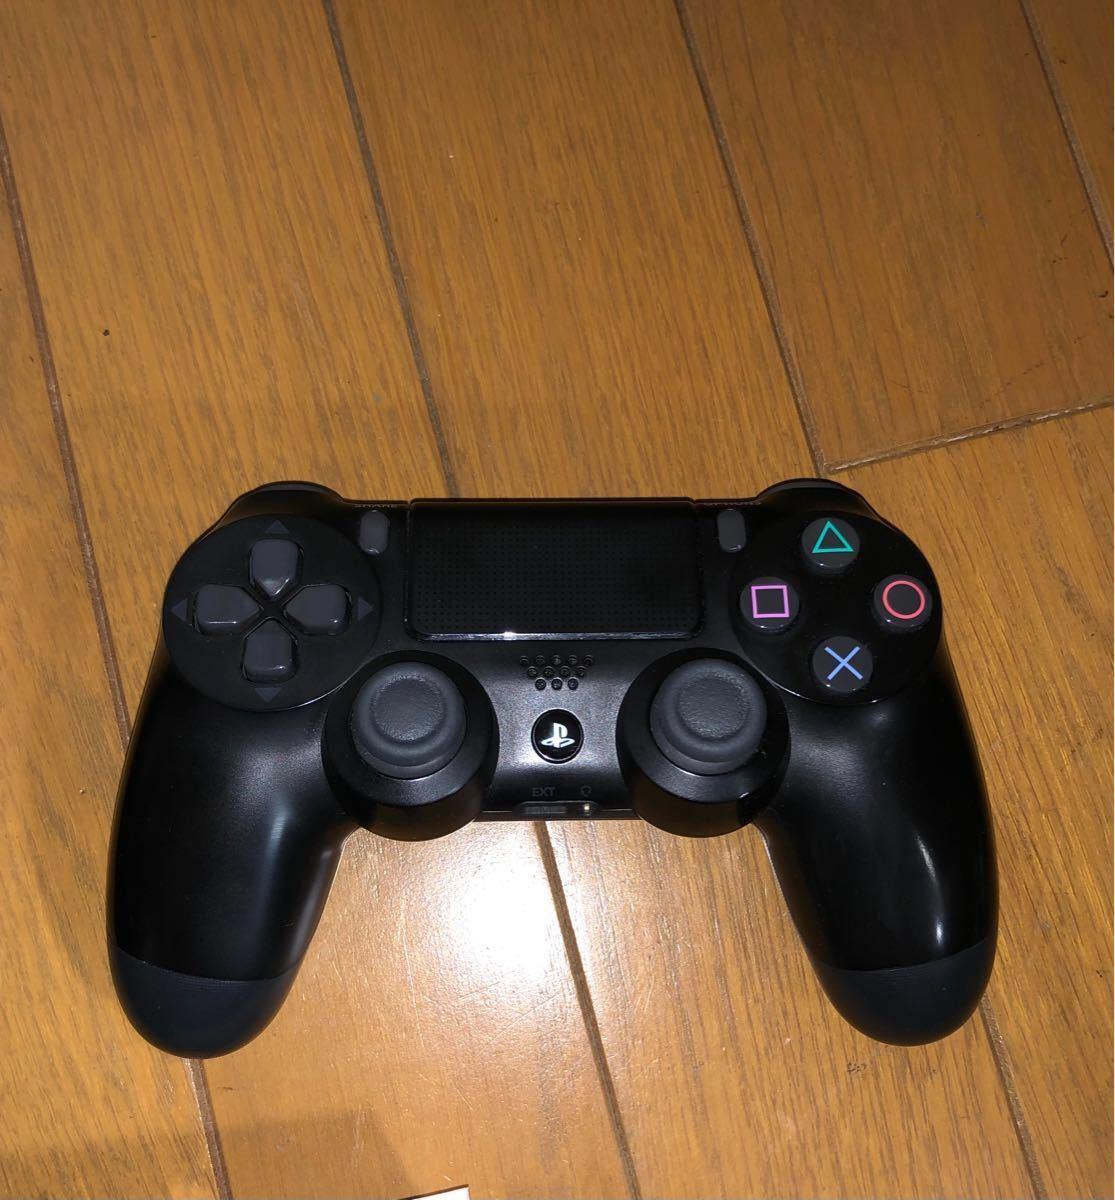 ps4【極美品】PlayStation4 PS4 本体ゲーム機 ソフト、フリーク付き